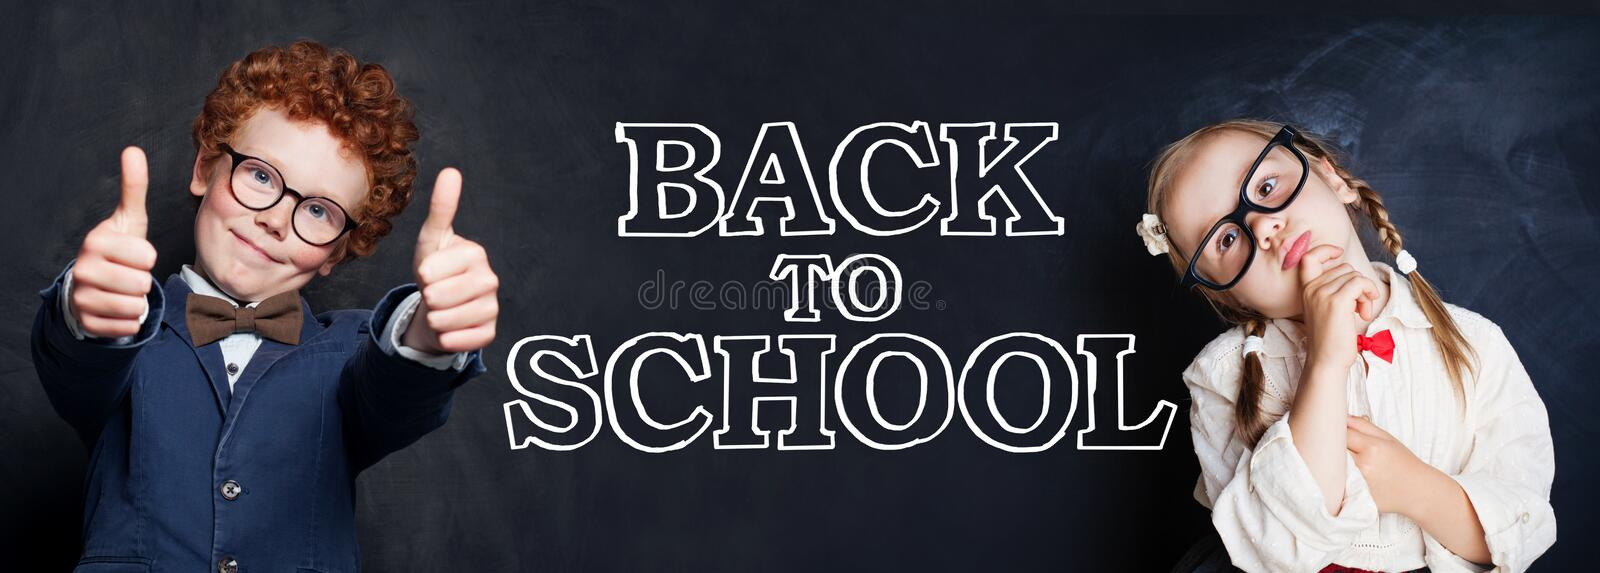 Cute student kids little boy and girl thinking, showing thumb up and having fun against chalkboard background. Back to school stock photo